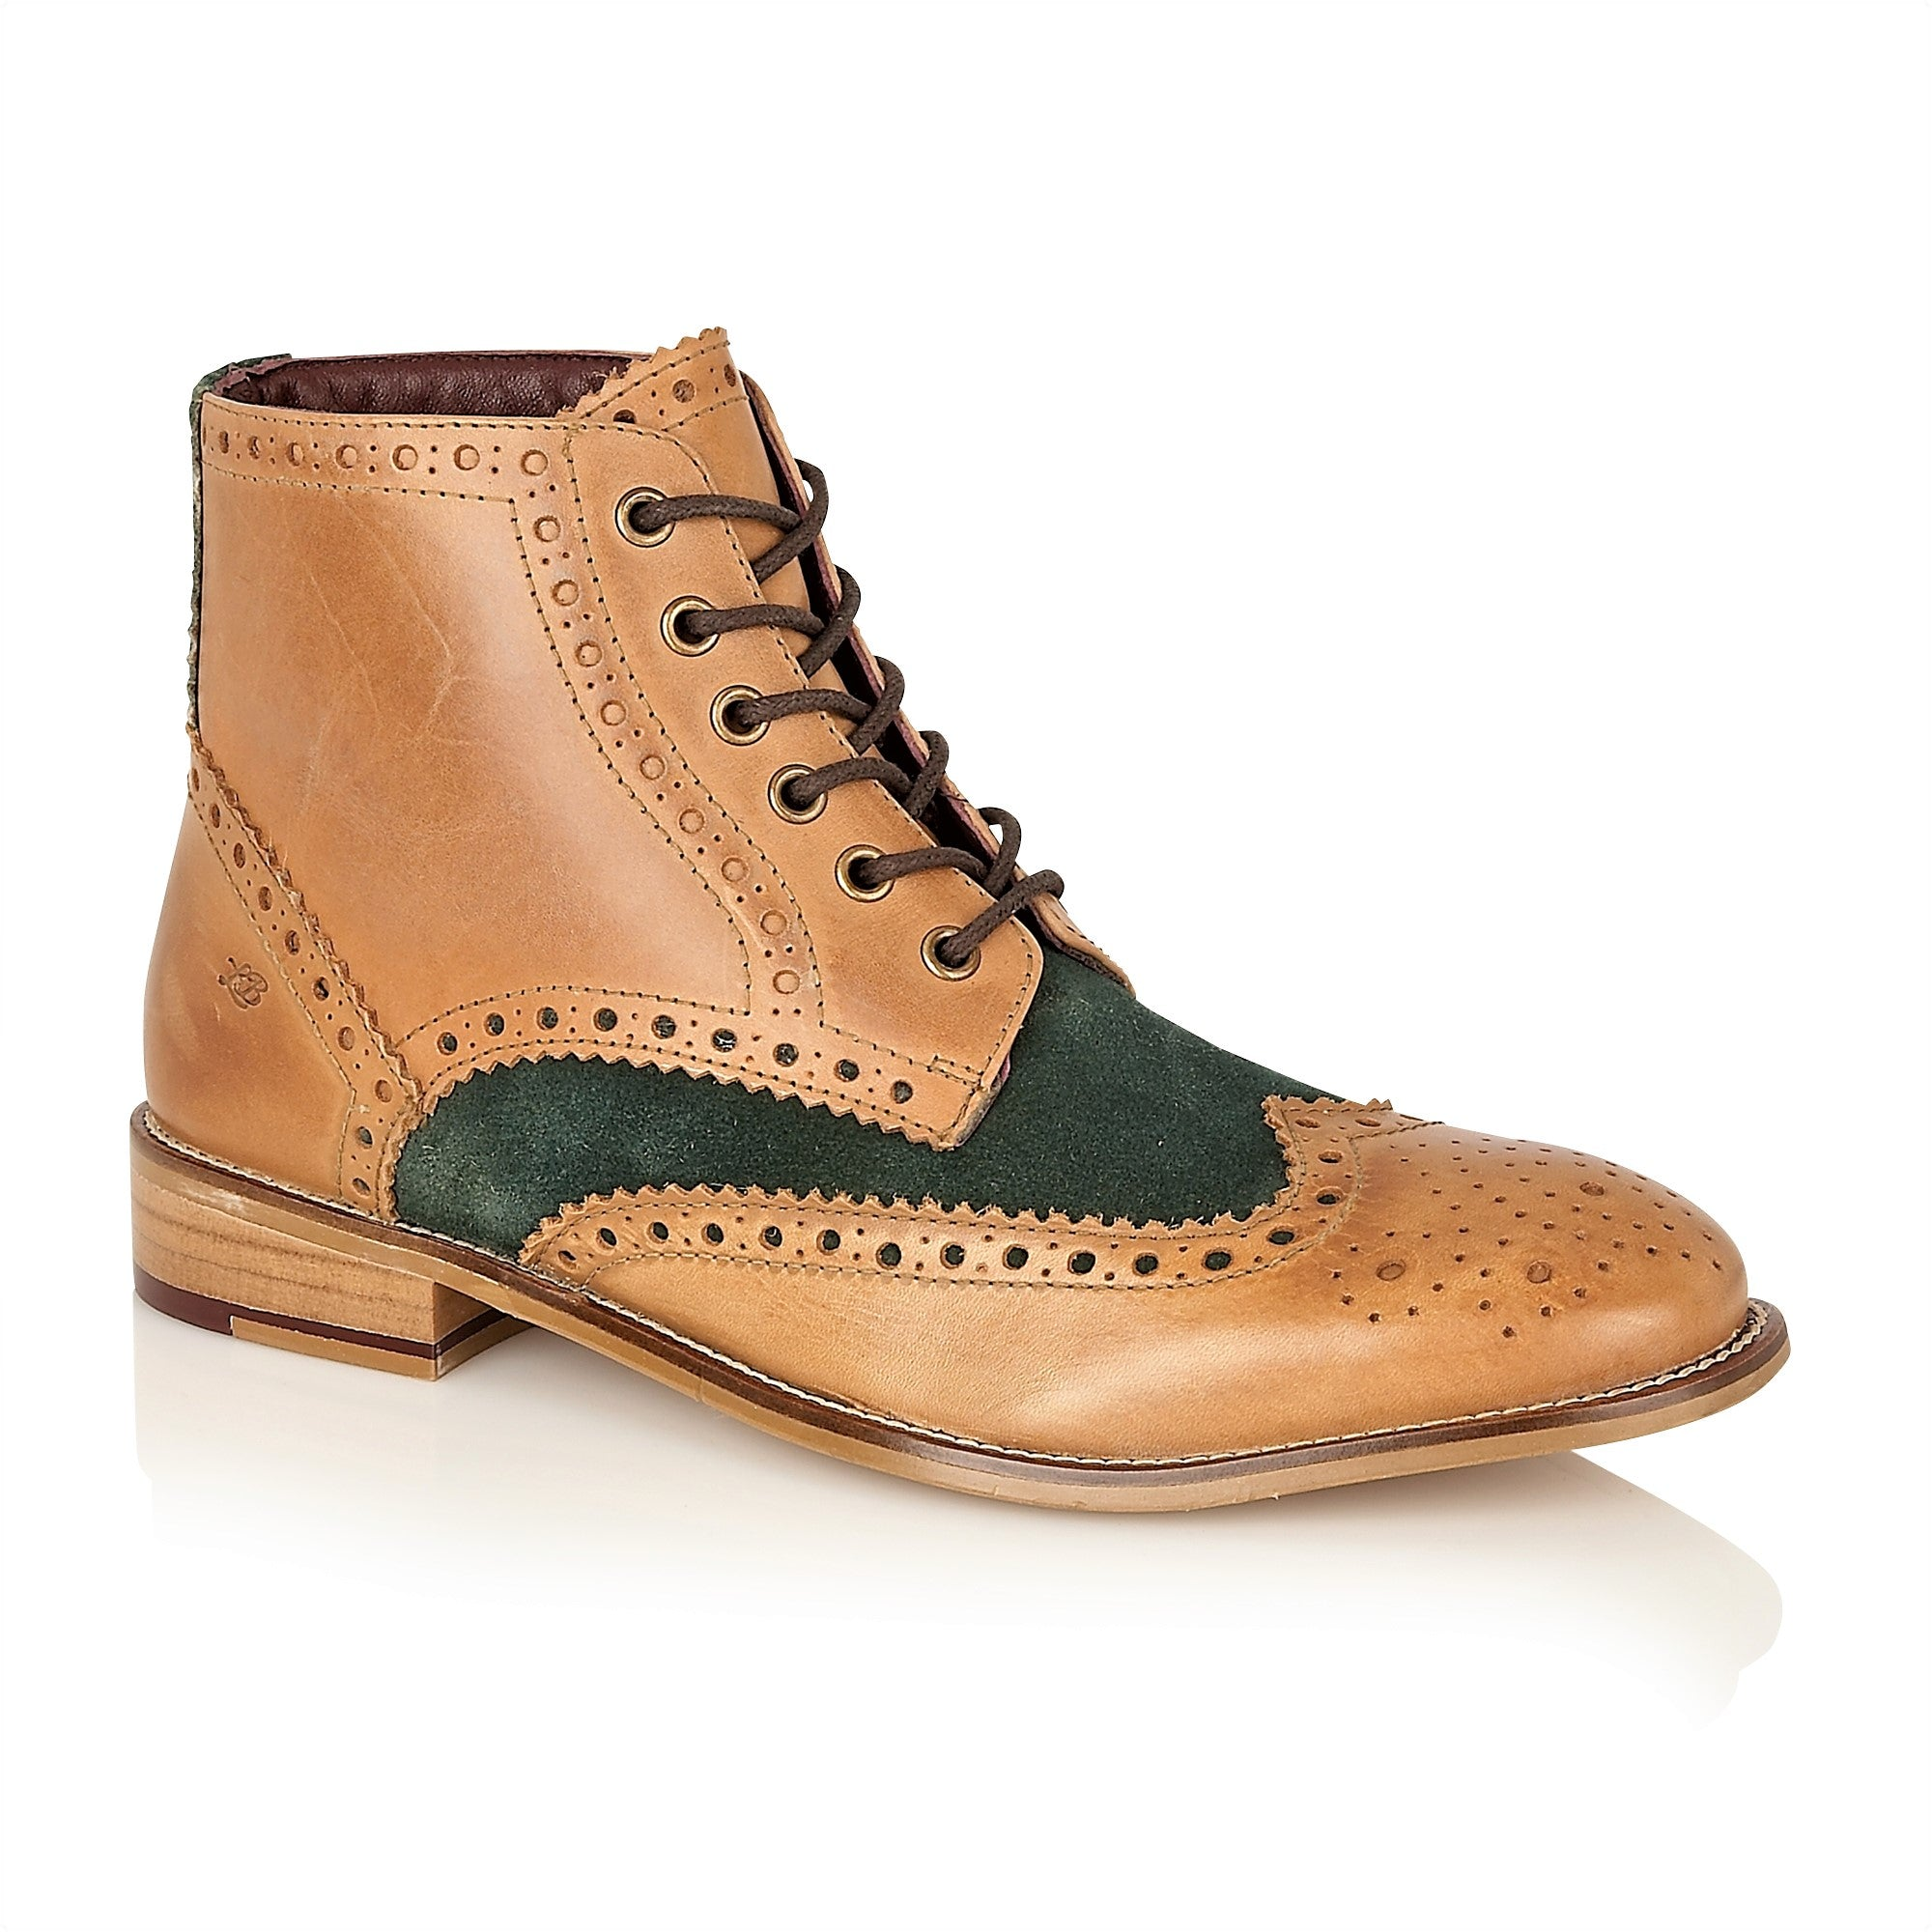 Gatsby Hi Boot Leather Tan/Green